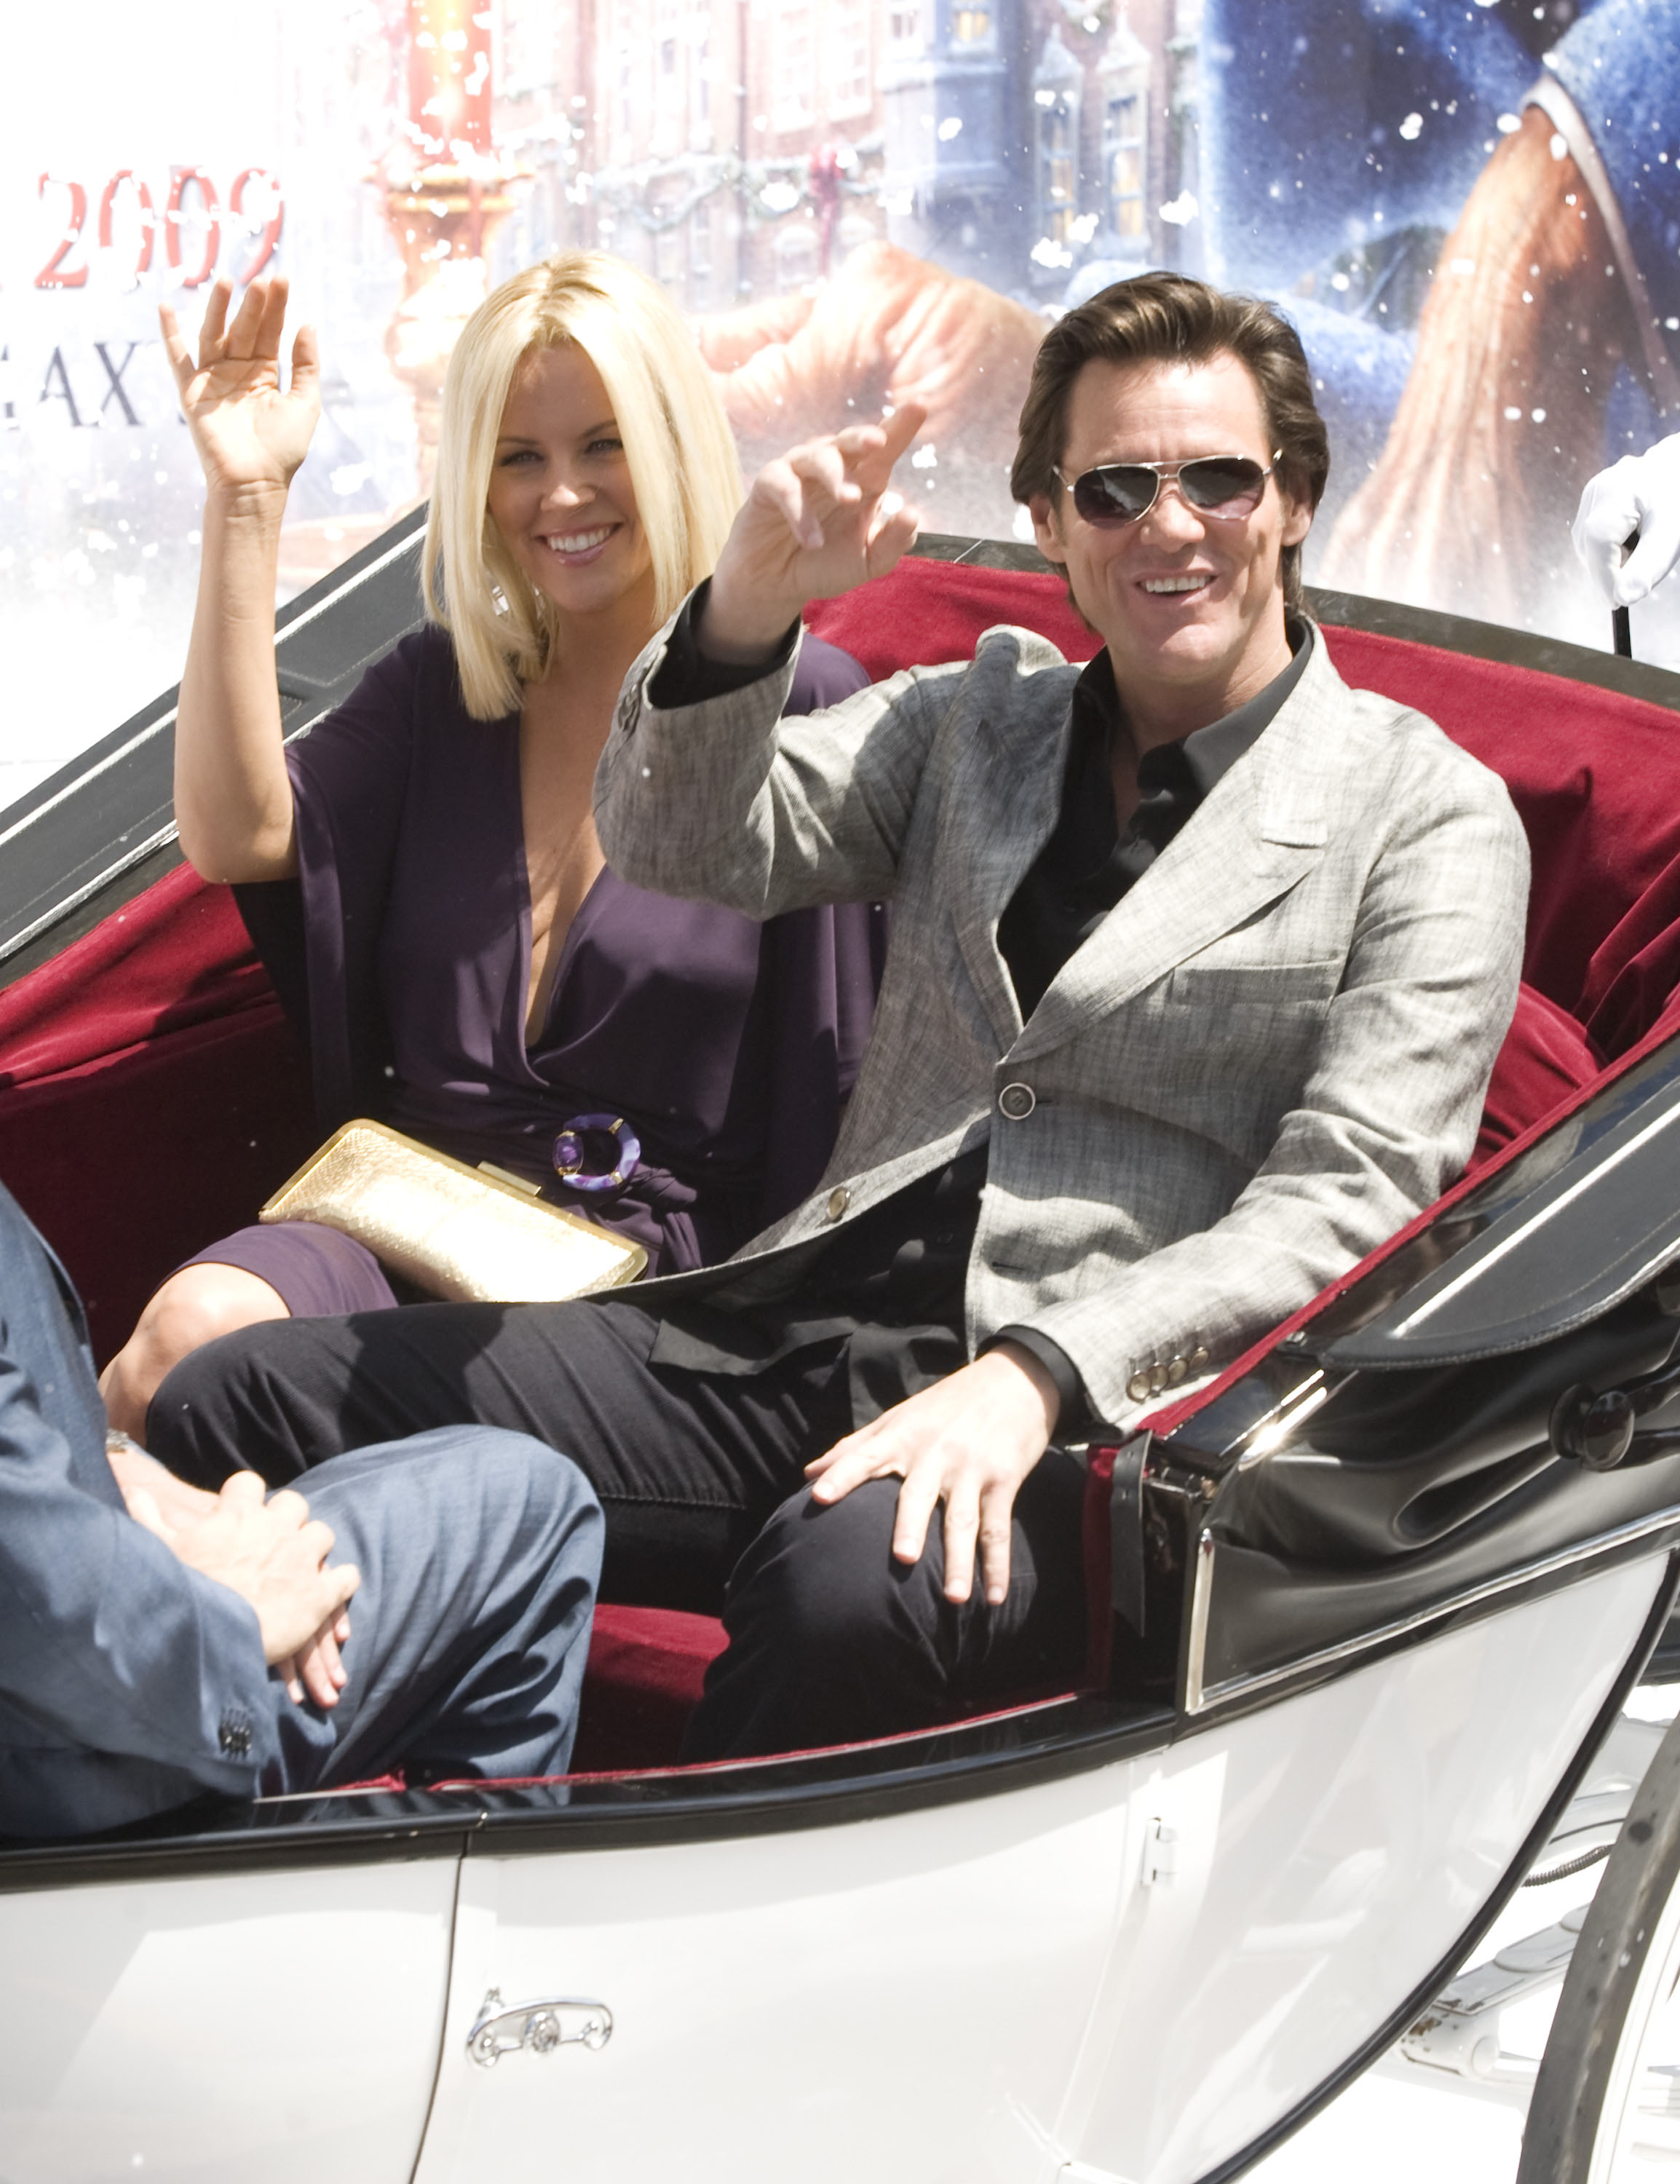 Christmas Carol Jim Carrey.Jim Carrey Hits Cannes With Snow A Christmas Carol